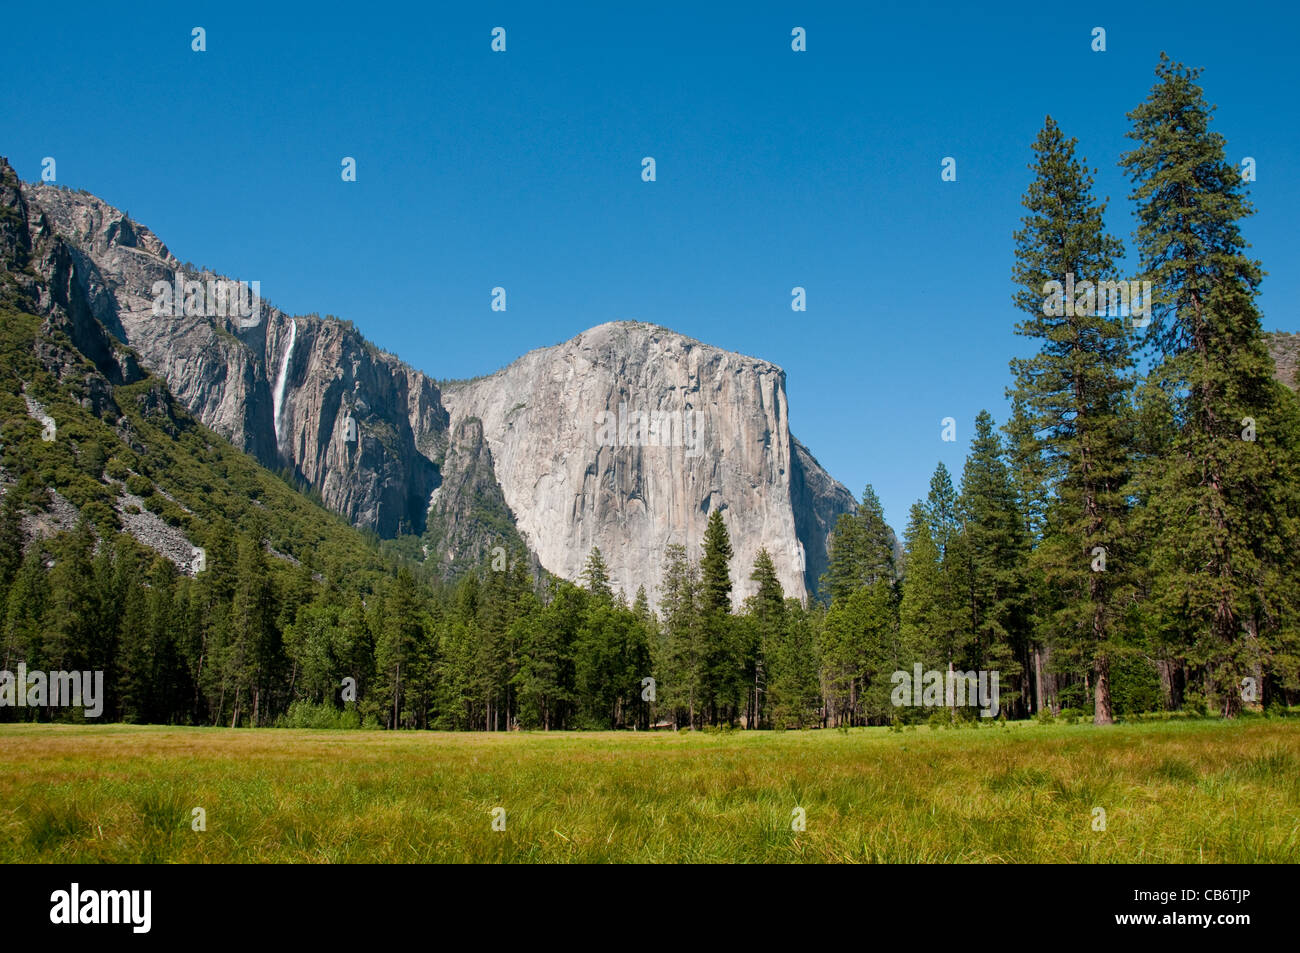 El Capitan, meadow, and Ribbon Falls in Yosemite Valley in Yosemite National Park California - Stock Image